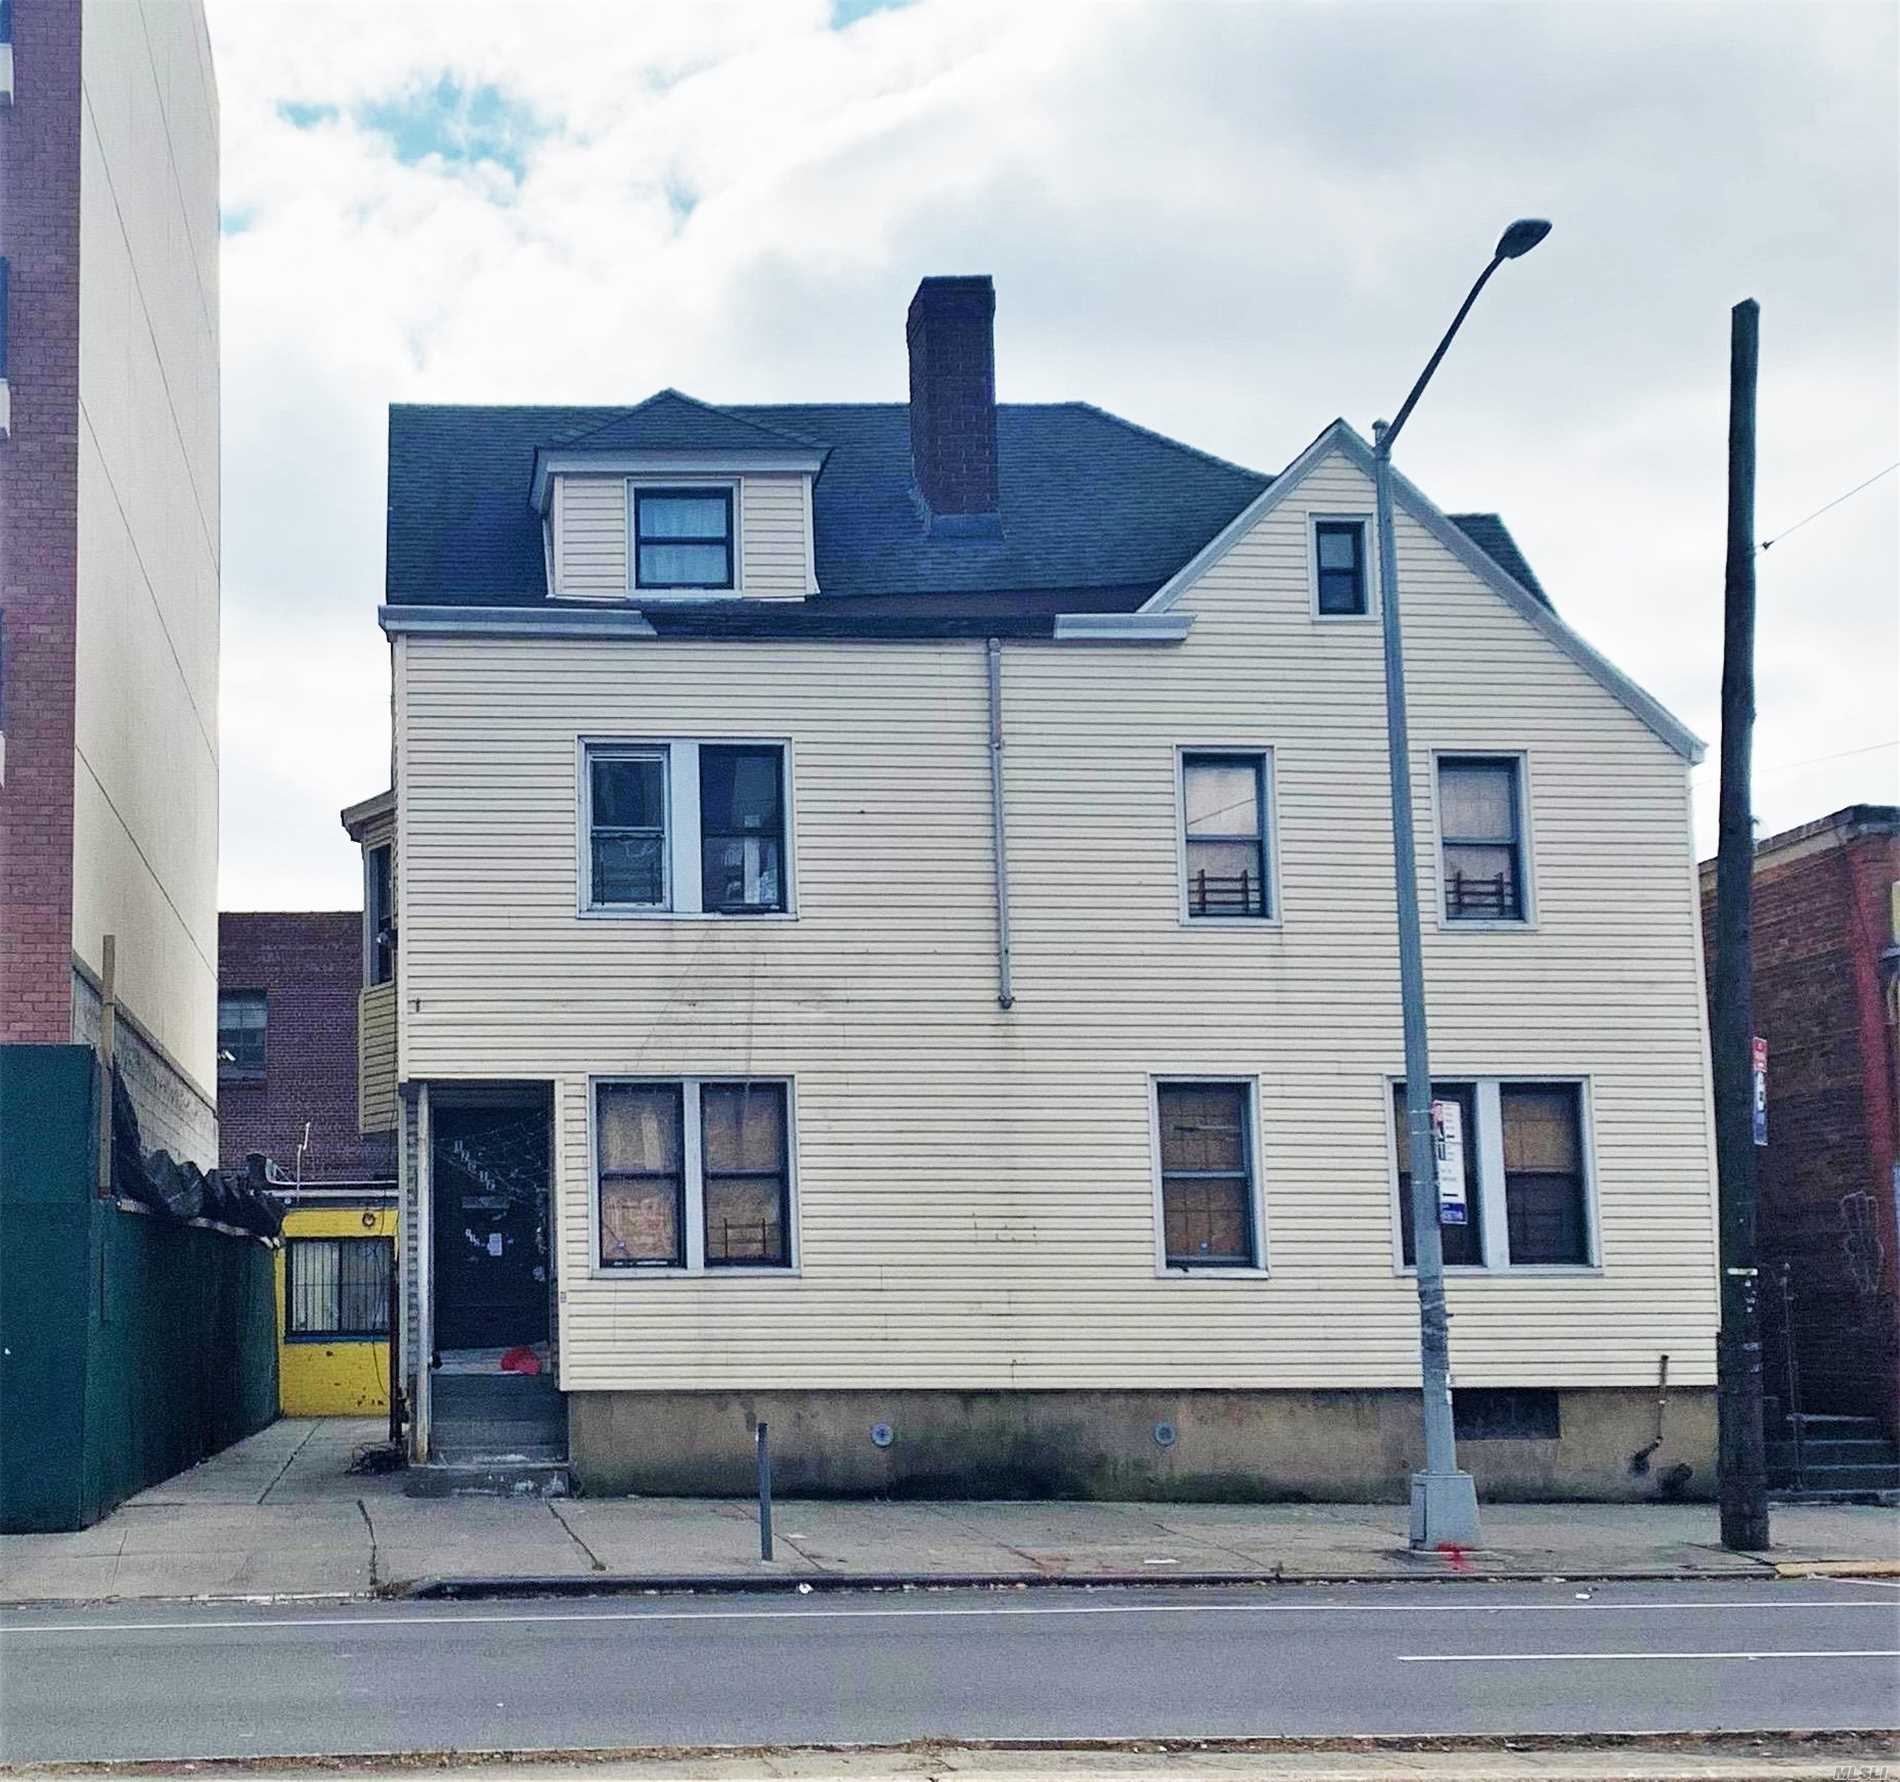 Development Site For Sale In The Hearth Of Jamaica. Close To Public Transportation, Lirr, Grand Central Parkway, F Train, E Train And Buses. Lot Size: 50 By 131, C2-4 , R6A , R5 , Dj. Currently, A Legal Vacant 4 Unit With A Commercial Unit In Rear Of The Lot.